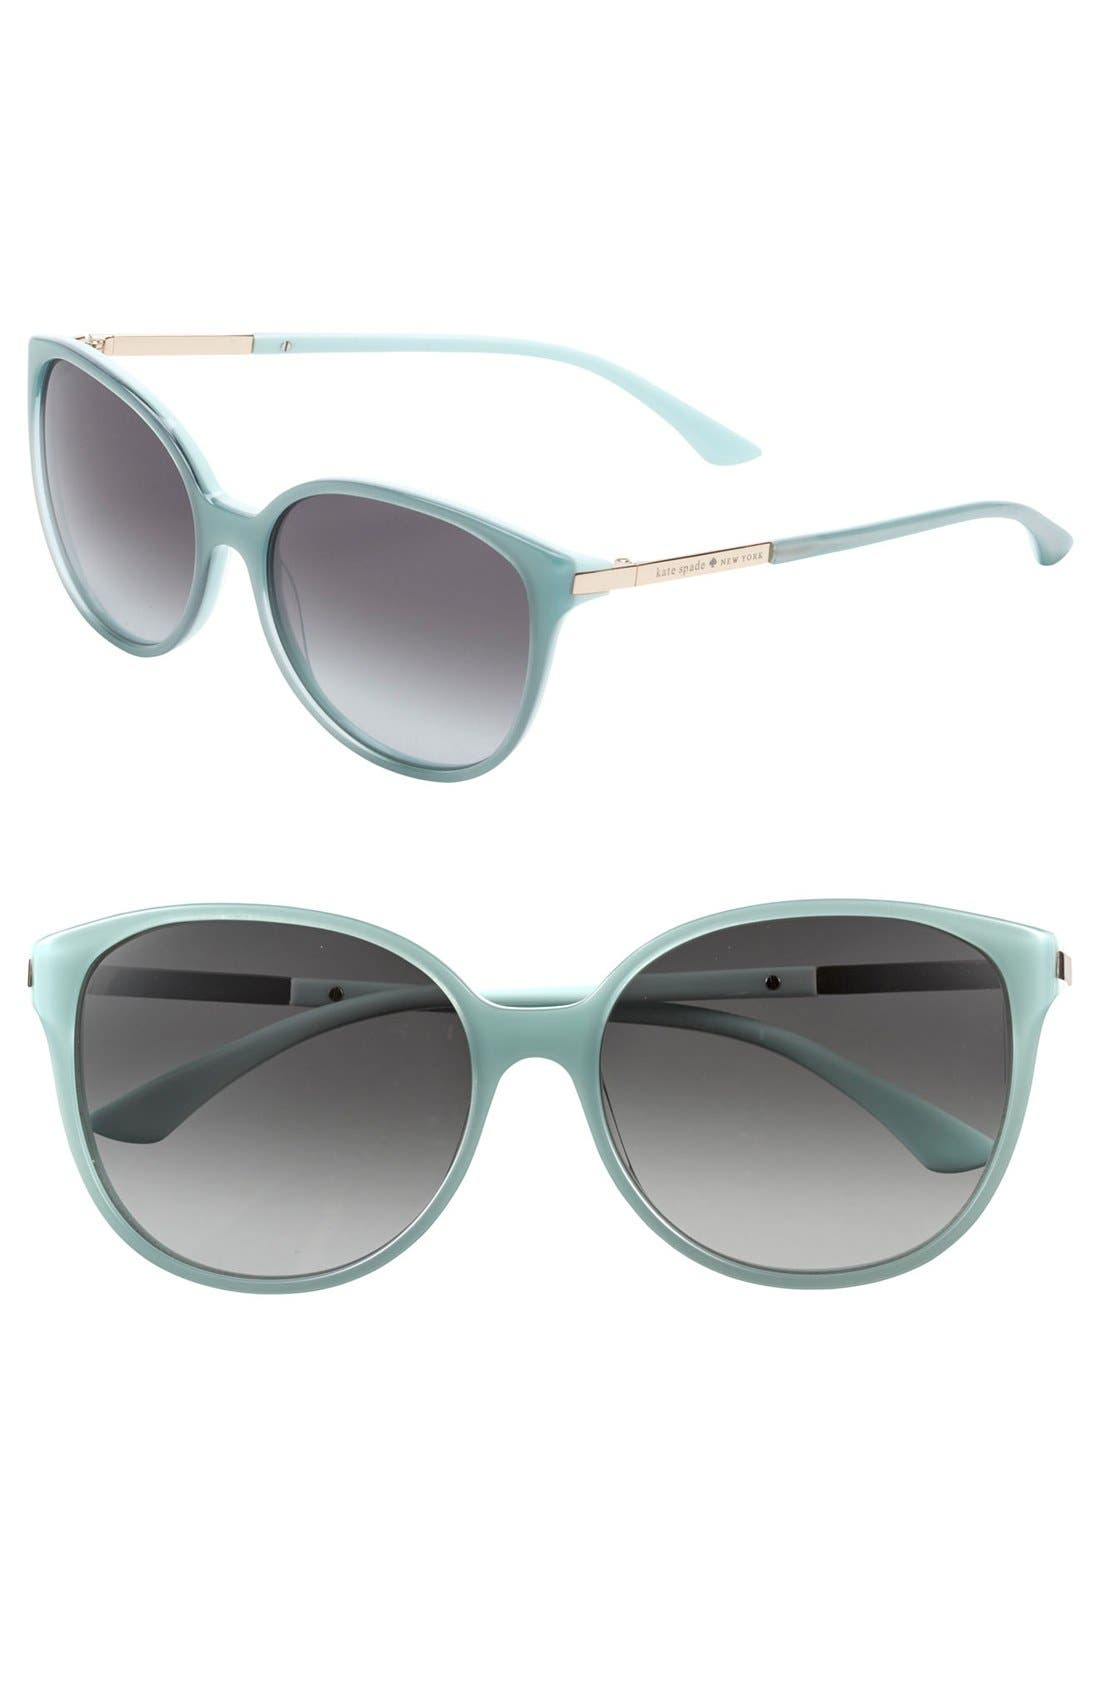 Main Image - kate spade new york 'shawna' 56mm sunglasses